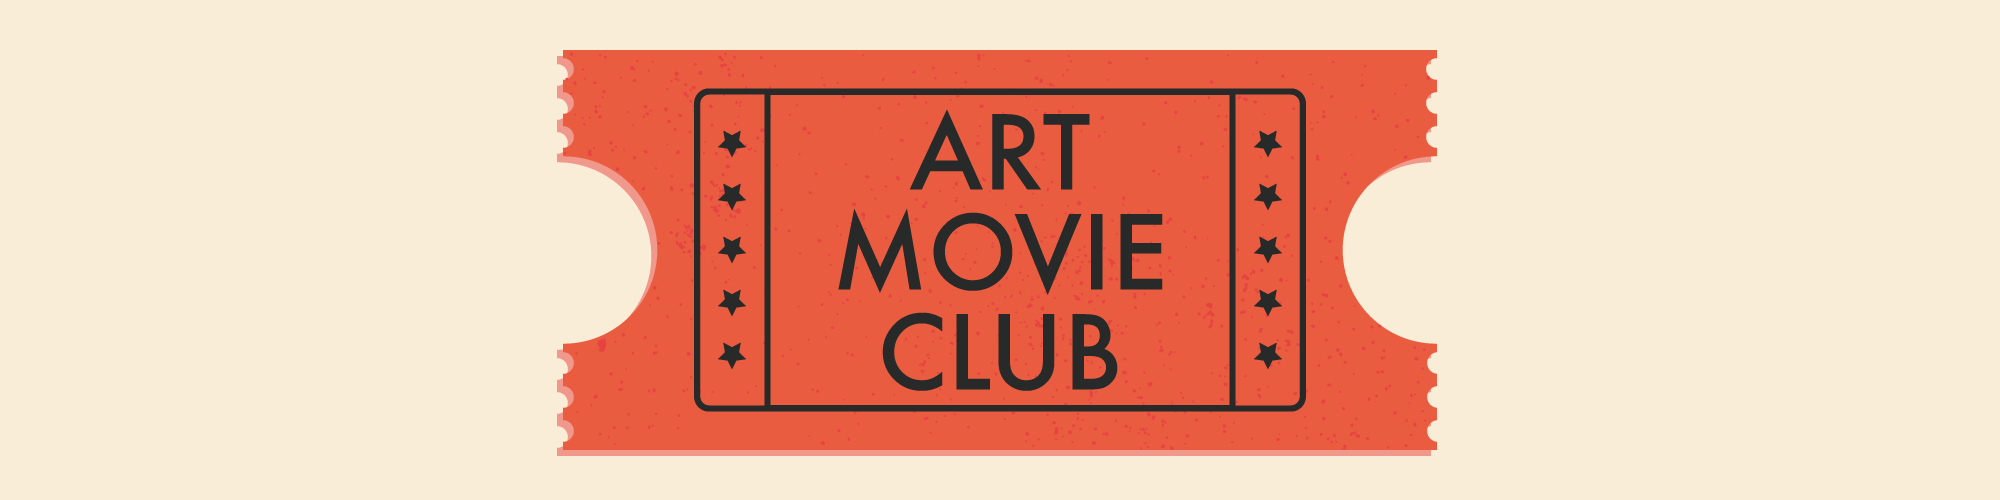 Art Movie Club